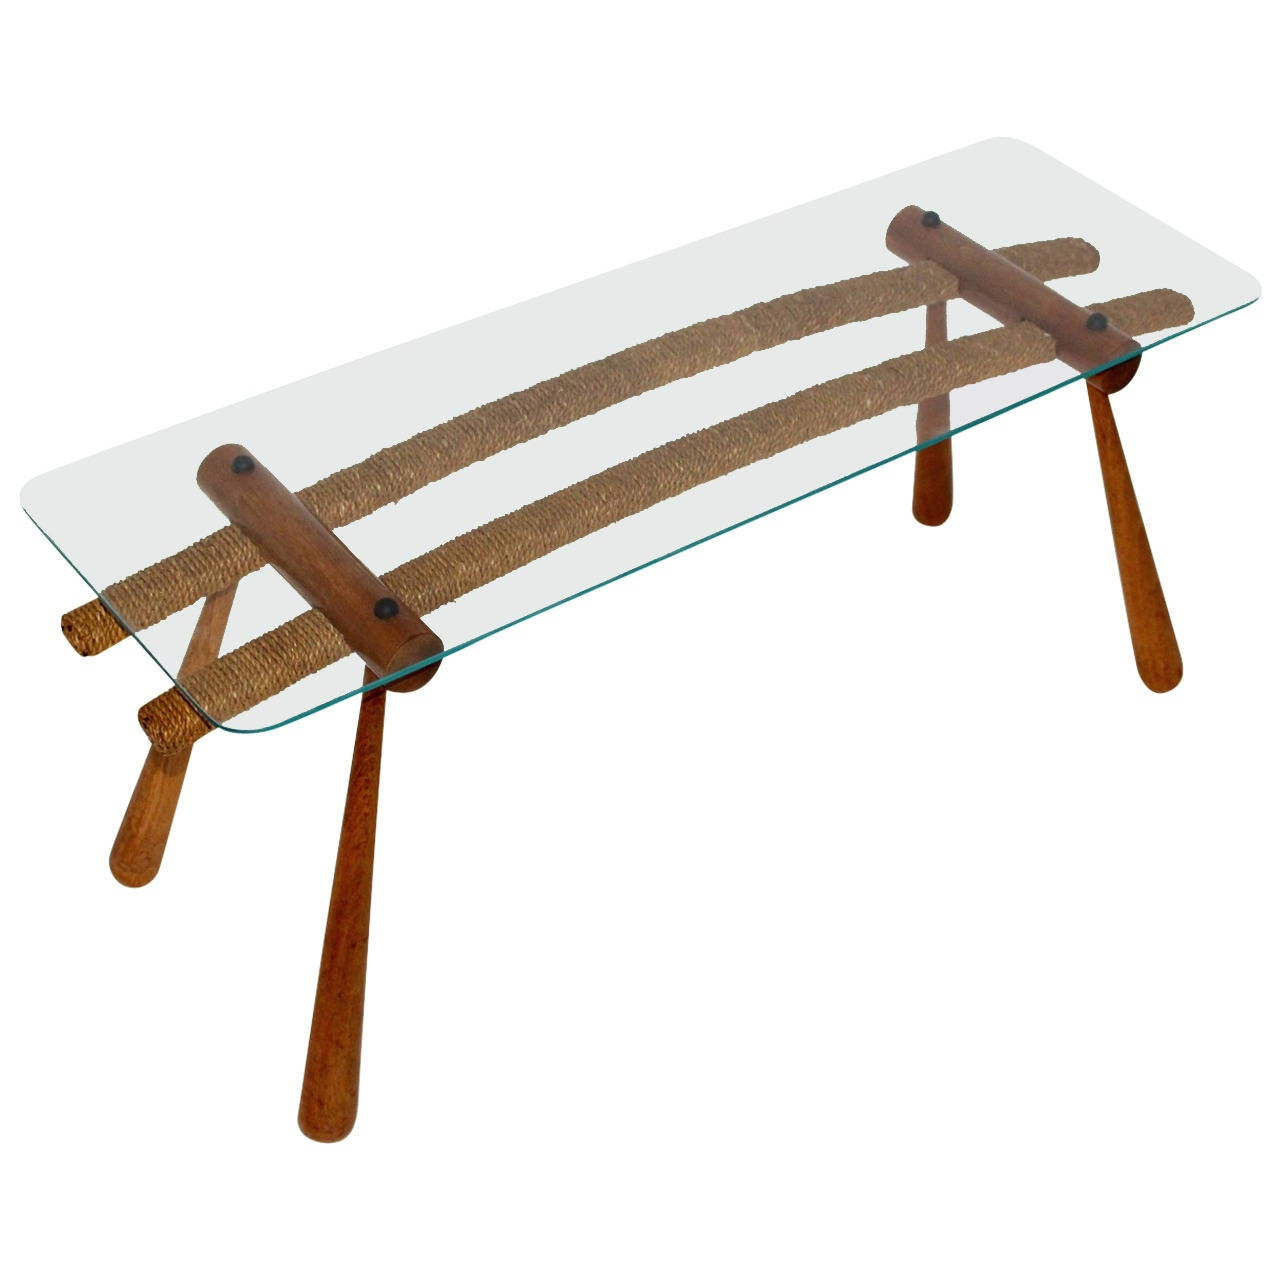 Mid Century Modern Coffee Table By Max Kment Vienna Austria 1955 For Sale At 1stdibs